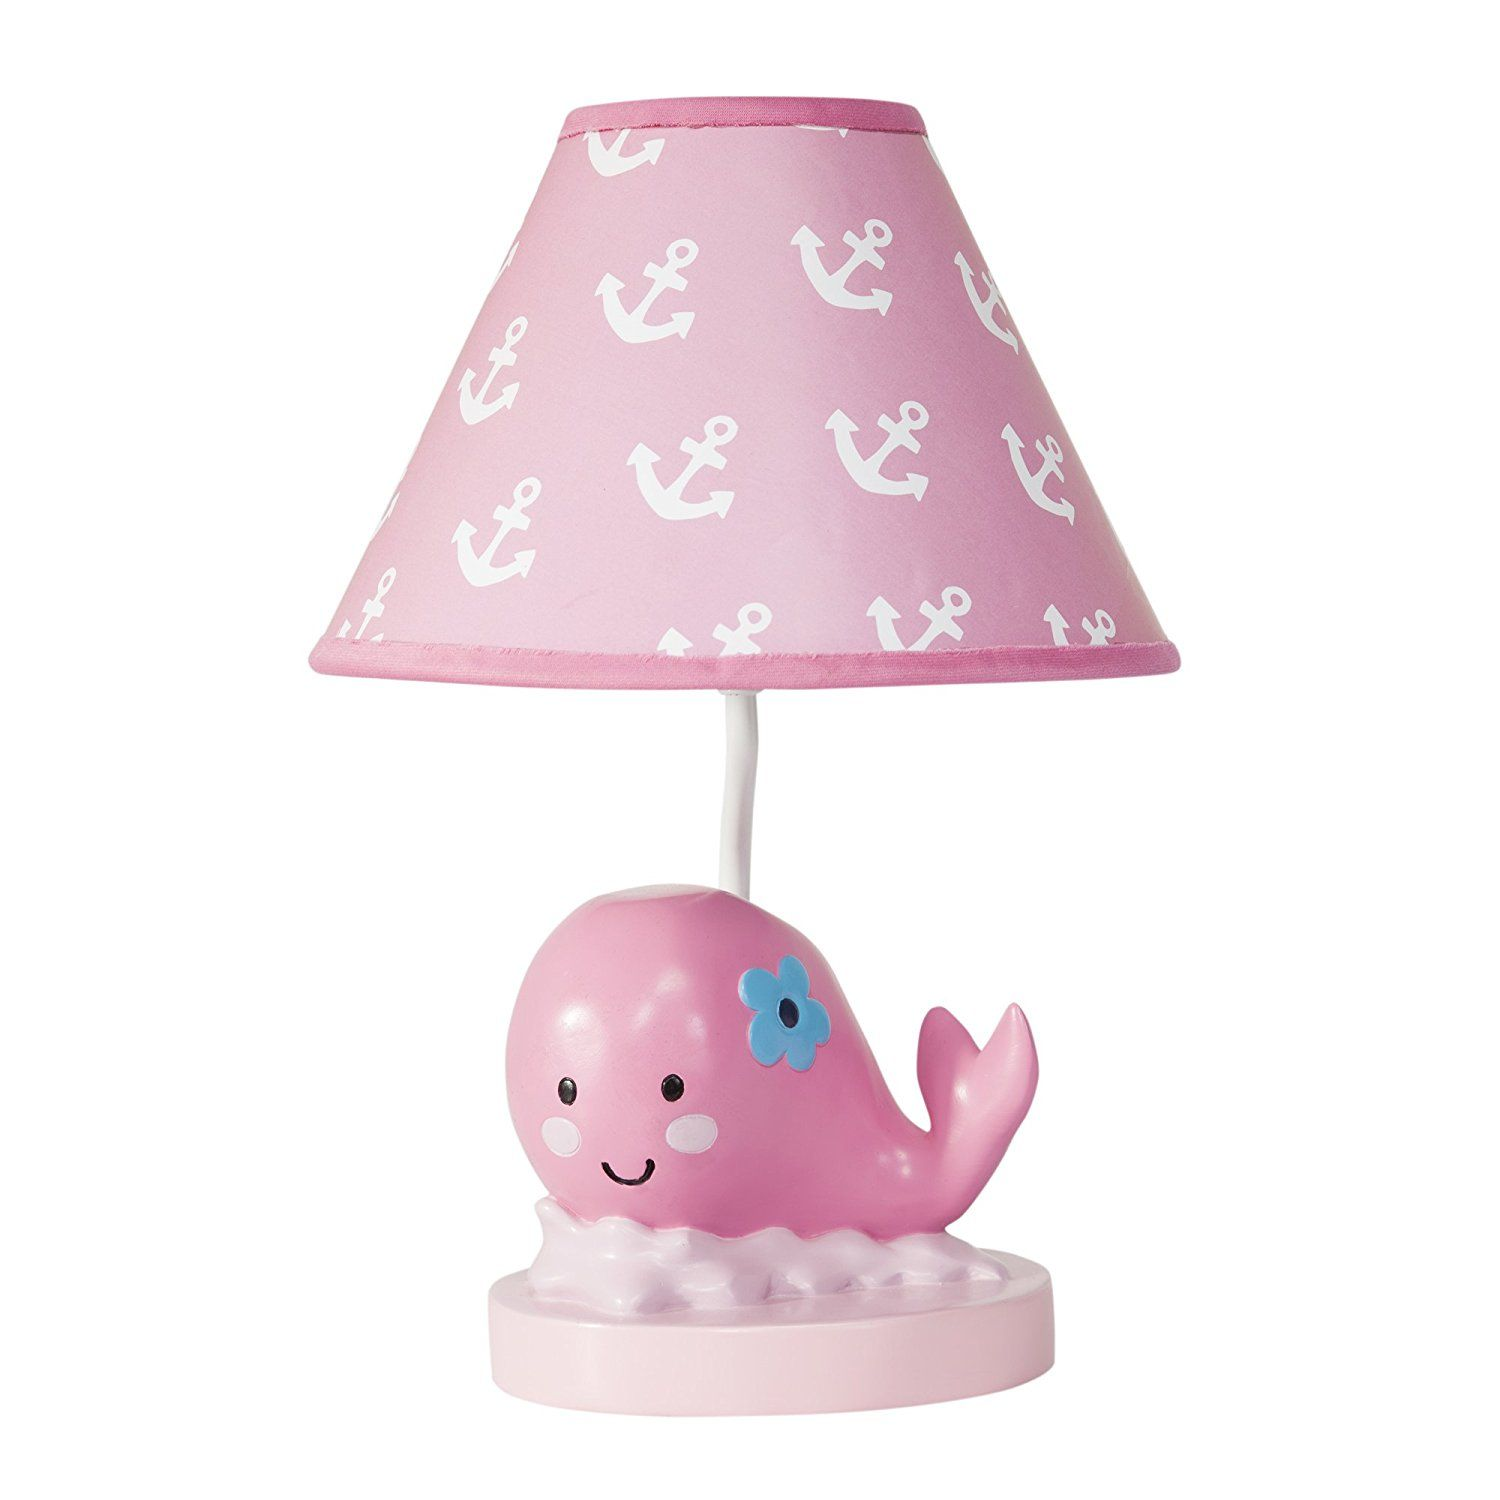 Schmetterling Lampe Nautische Kinderzimmers Lampe Beleuchtung Whale Nursery Table